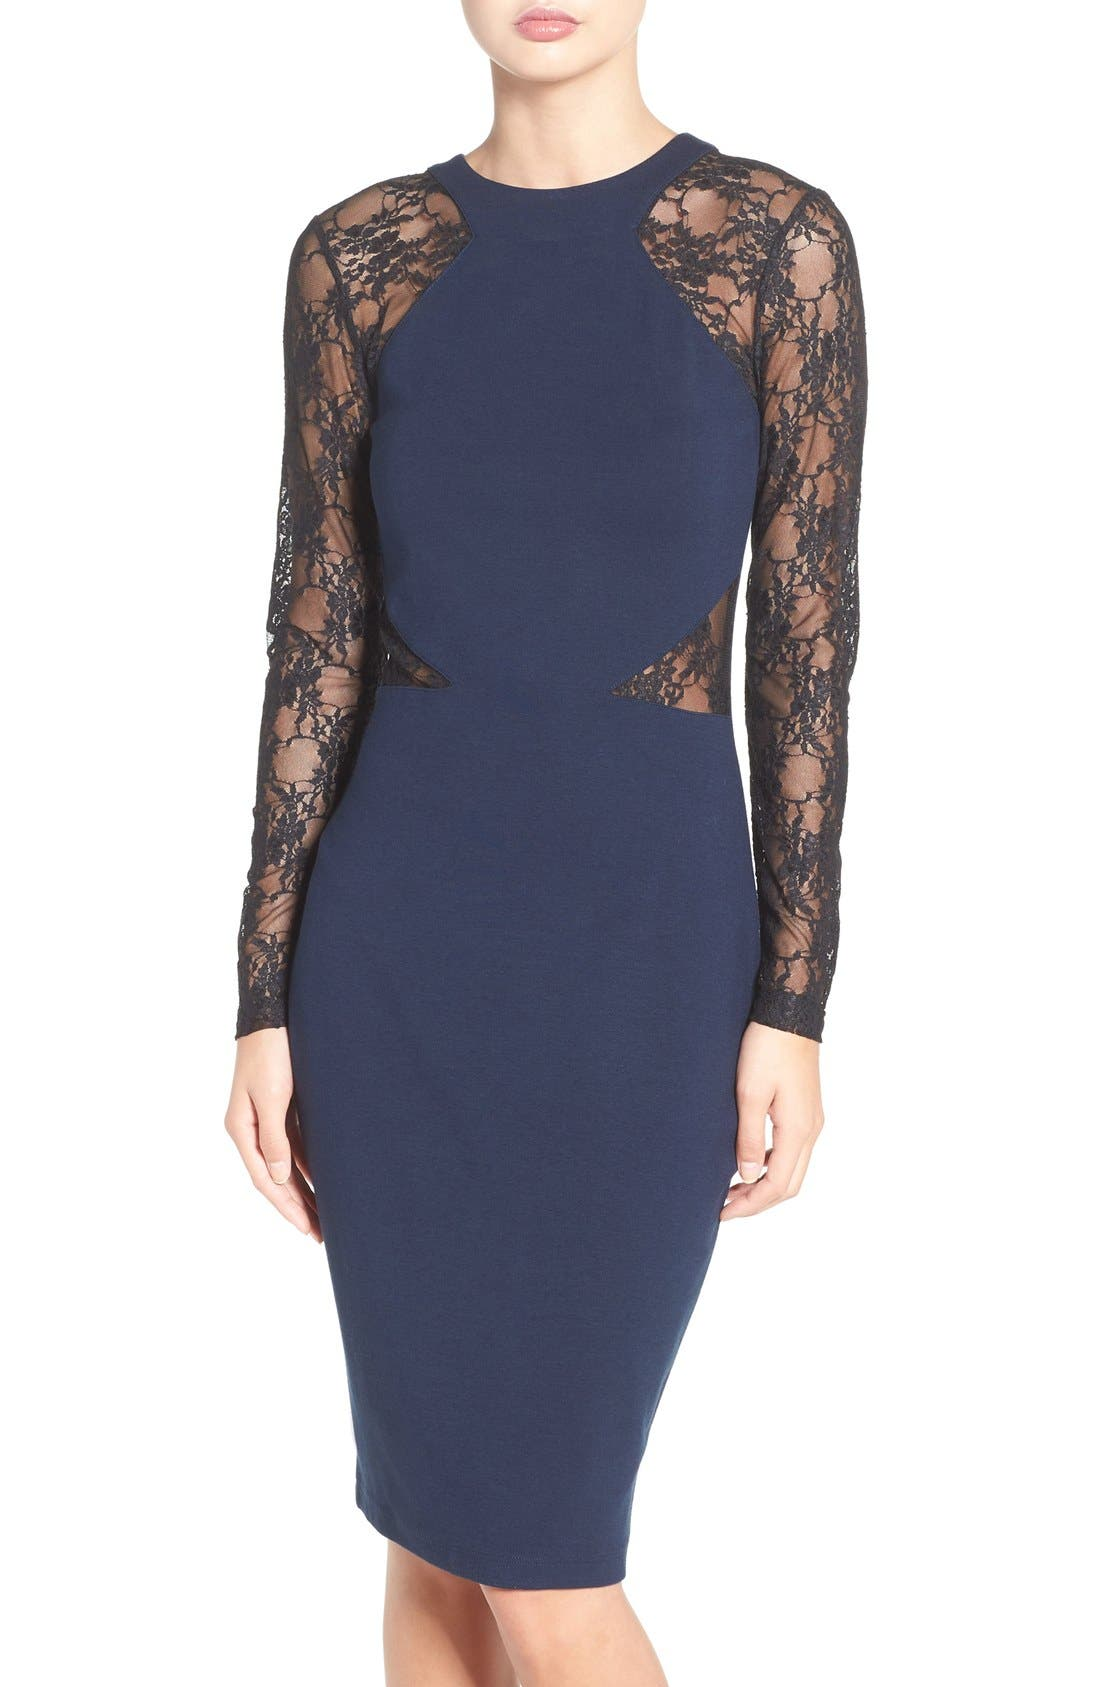 Main Image - French Connection 'Viven' Lace Long Sleeve Sheath Dress